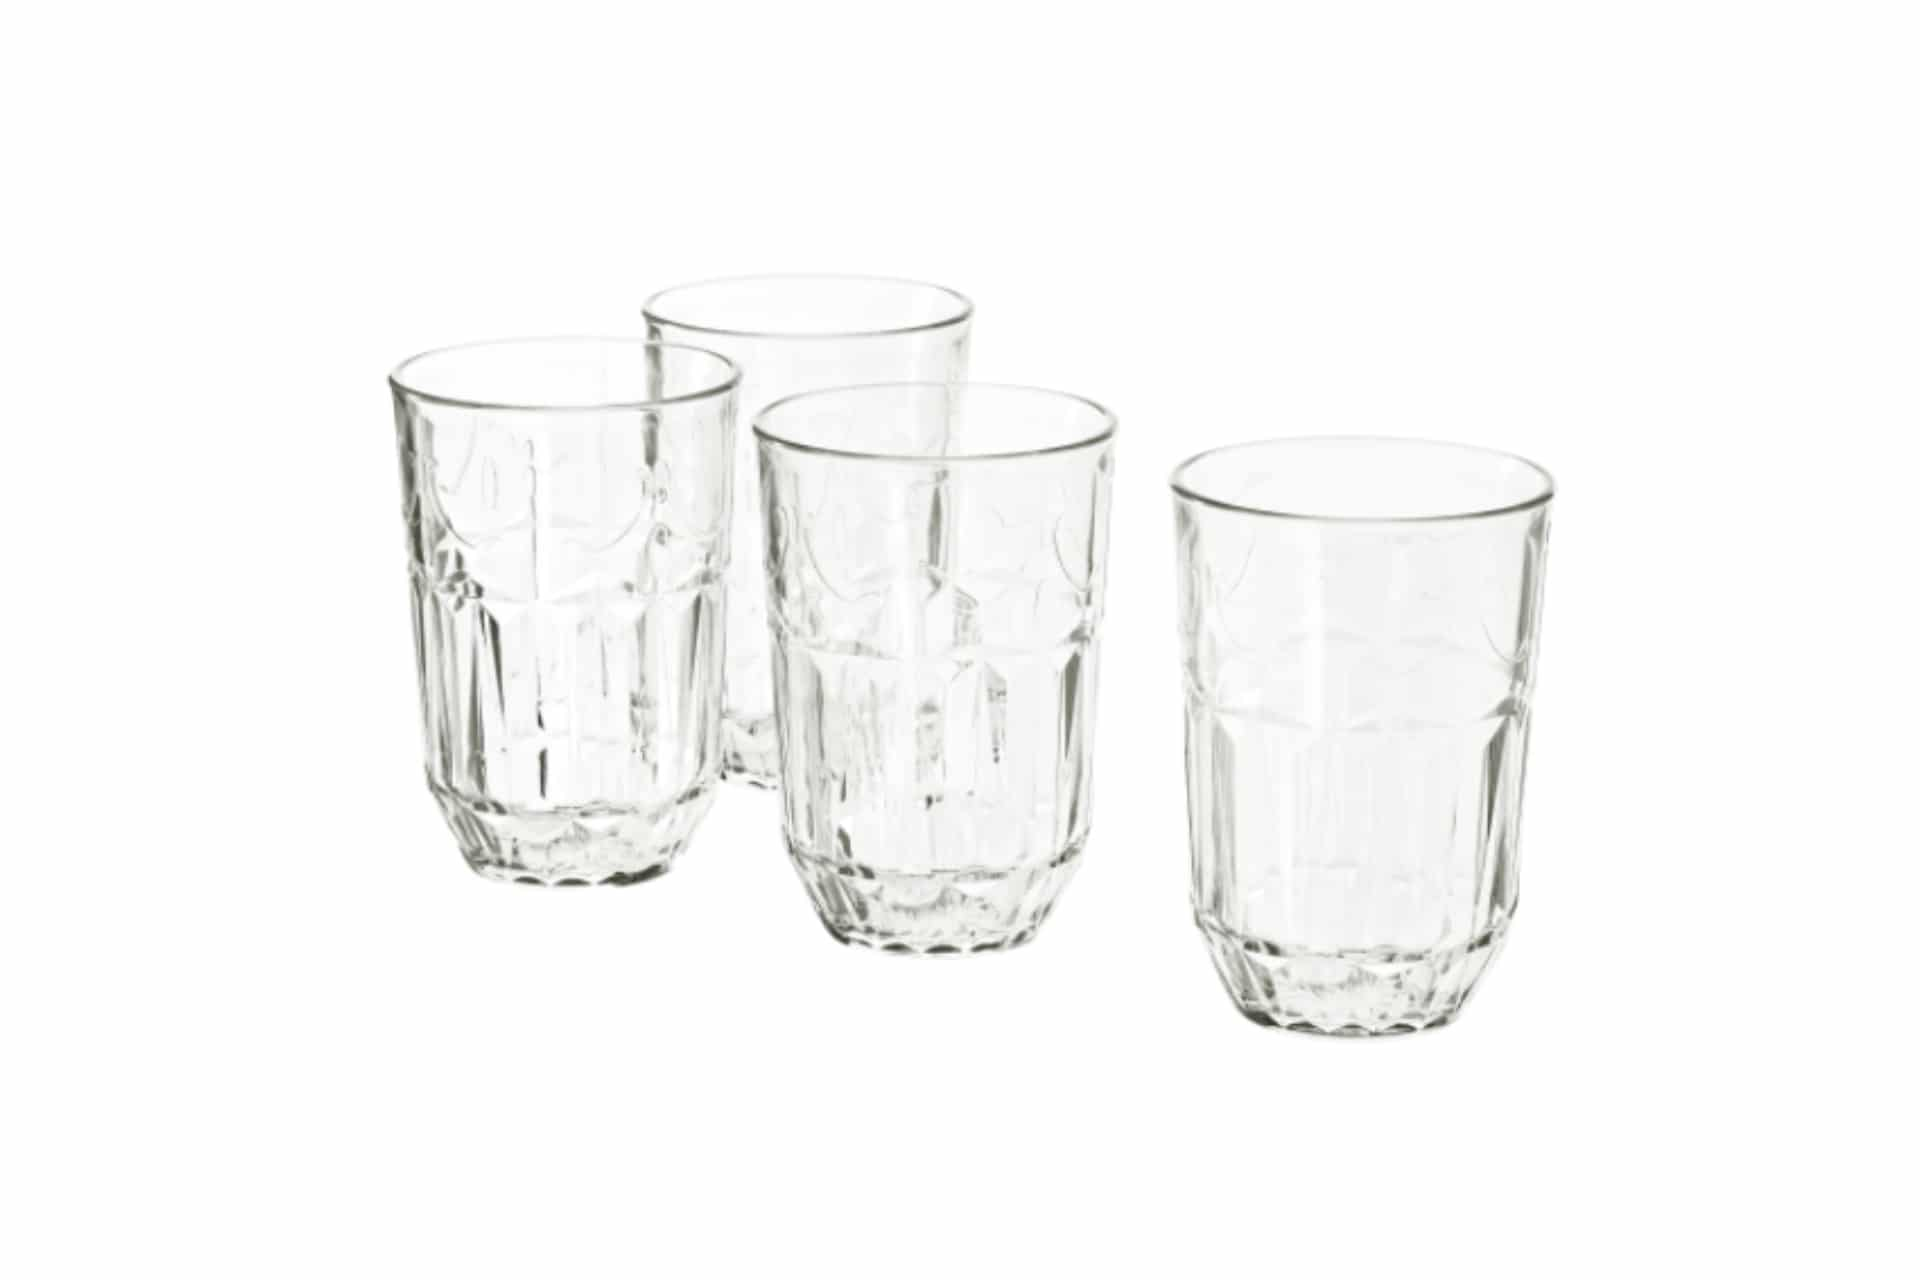 ornate glasses on a white background